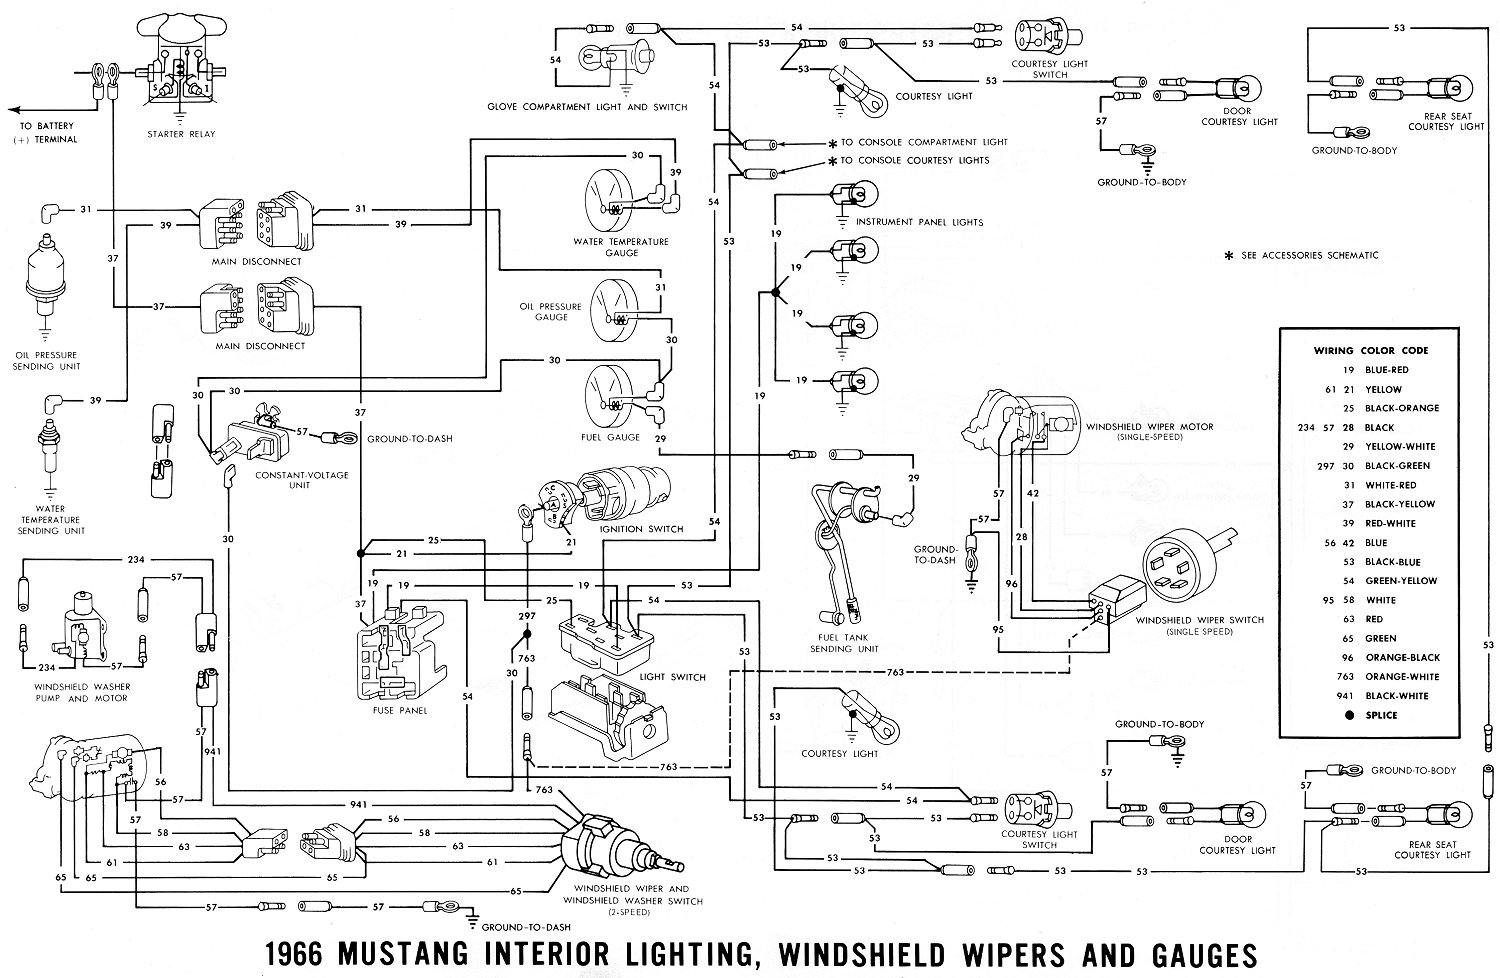 1972 El Camino Wiring Schematic Diagram Libraries 72 For Amp Gauge Mustang Simple Post1972 Third Level